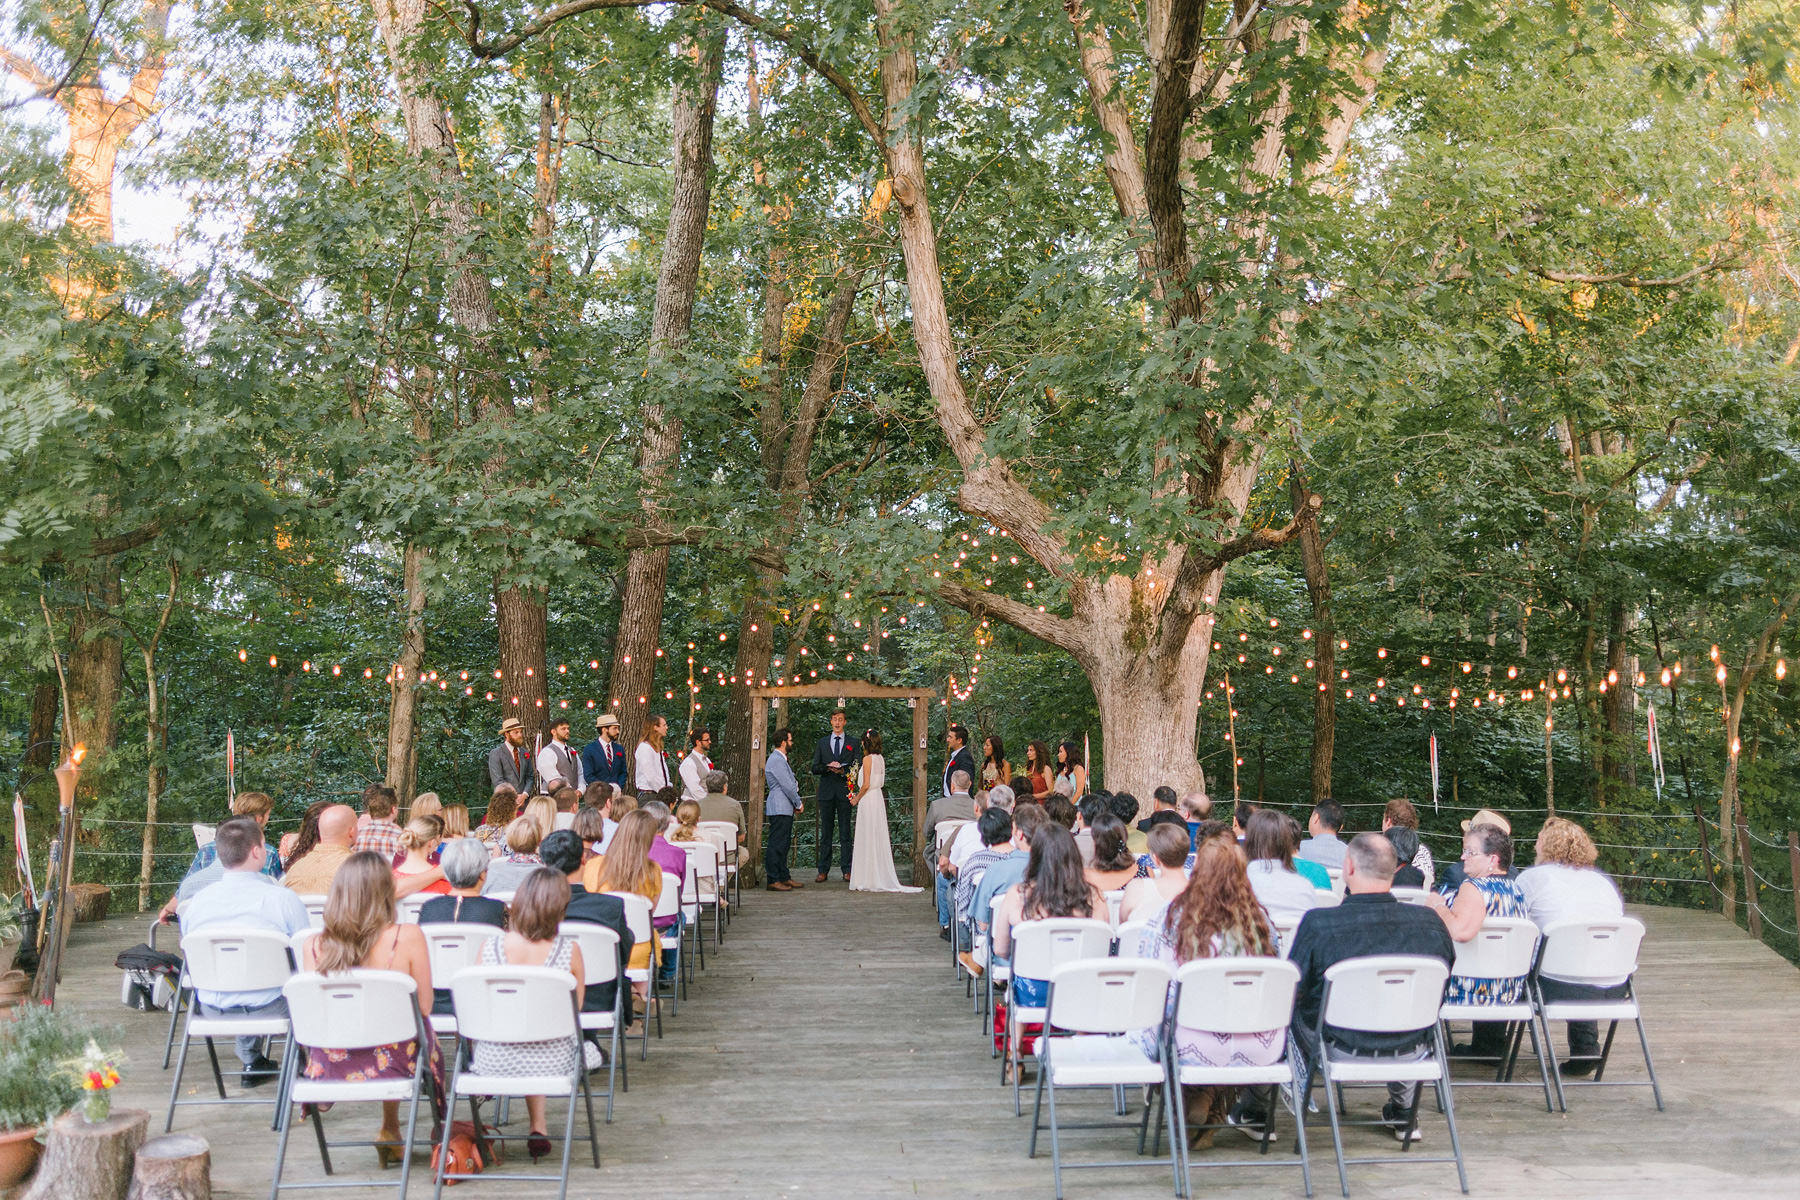 Springfield Wedding at Blackberry Creek_Kindling Wedding Photography 45.JPG